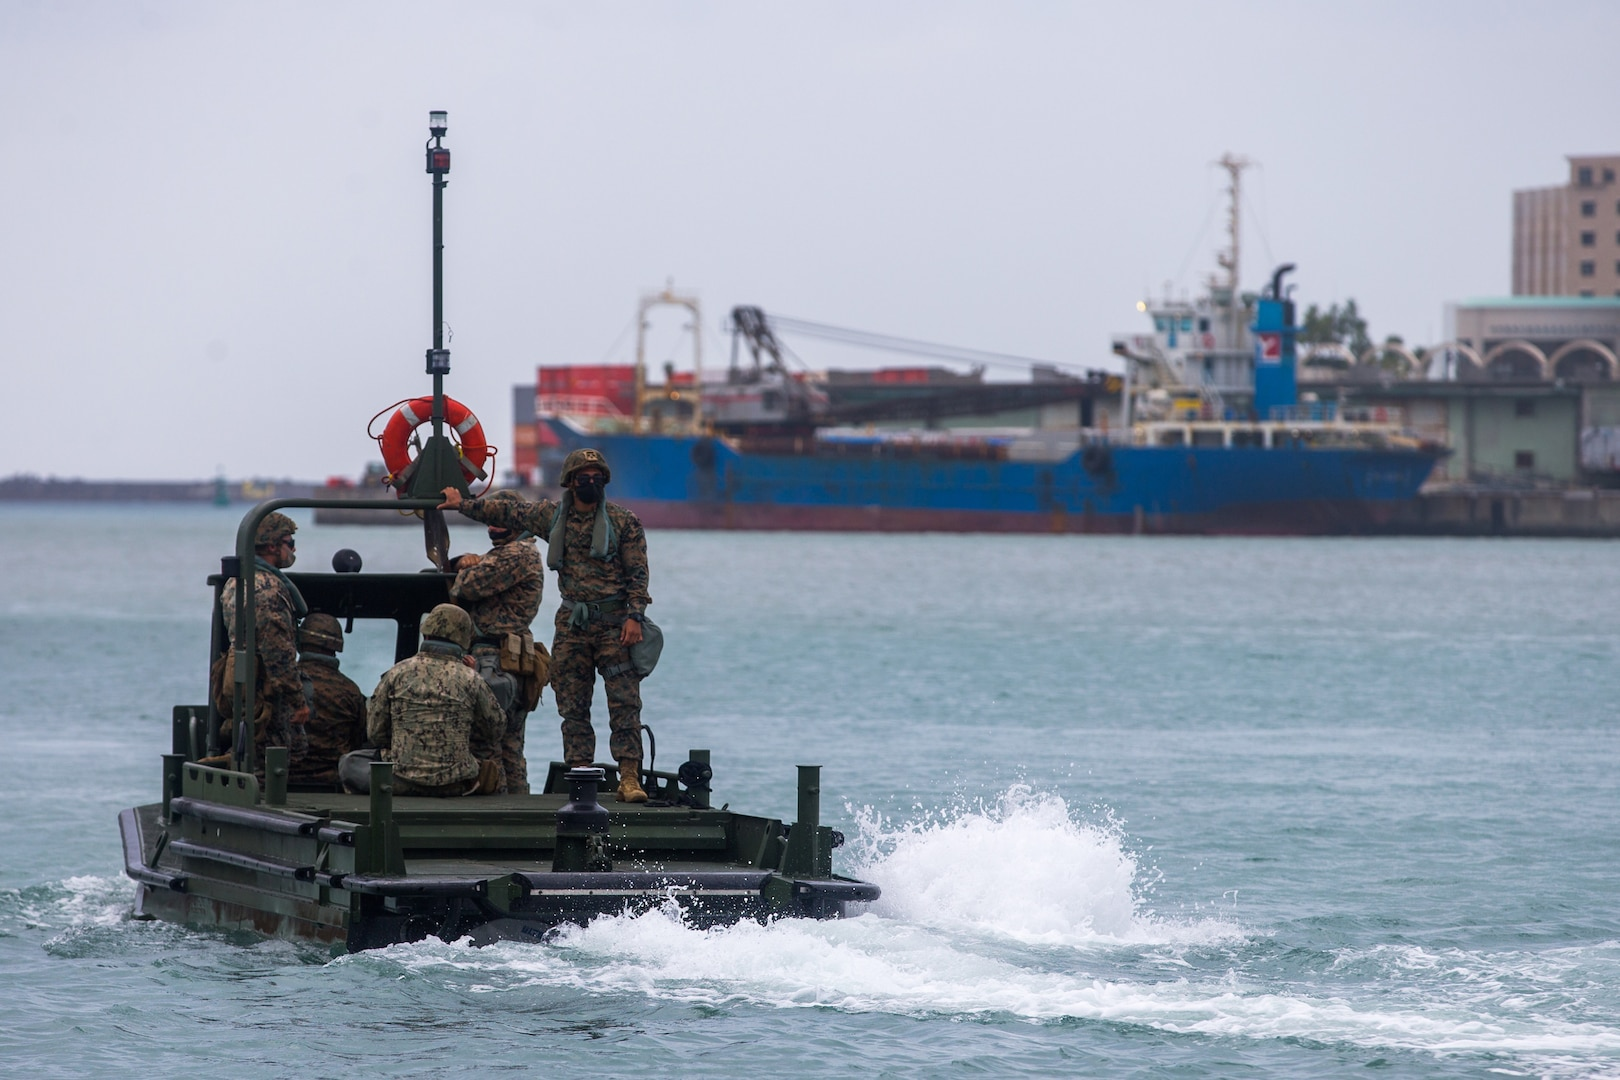 9th Engineer Support Battalion practices EABO concepts & Naval integration